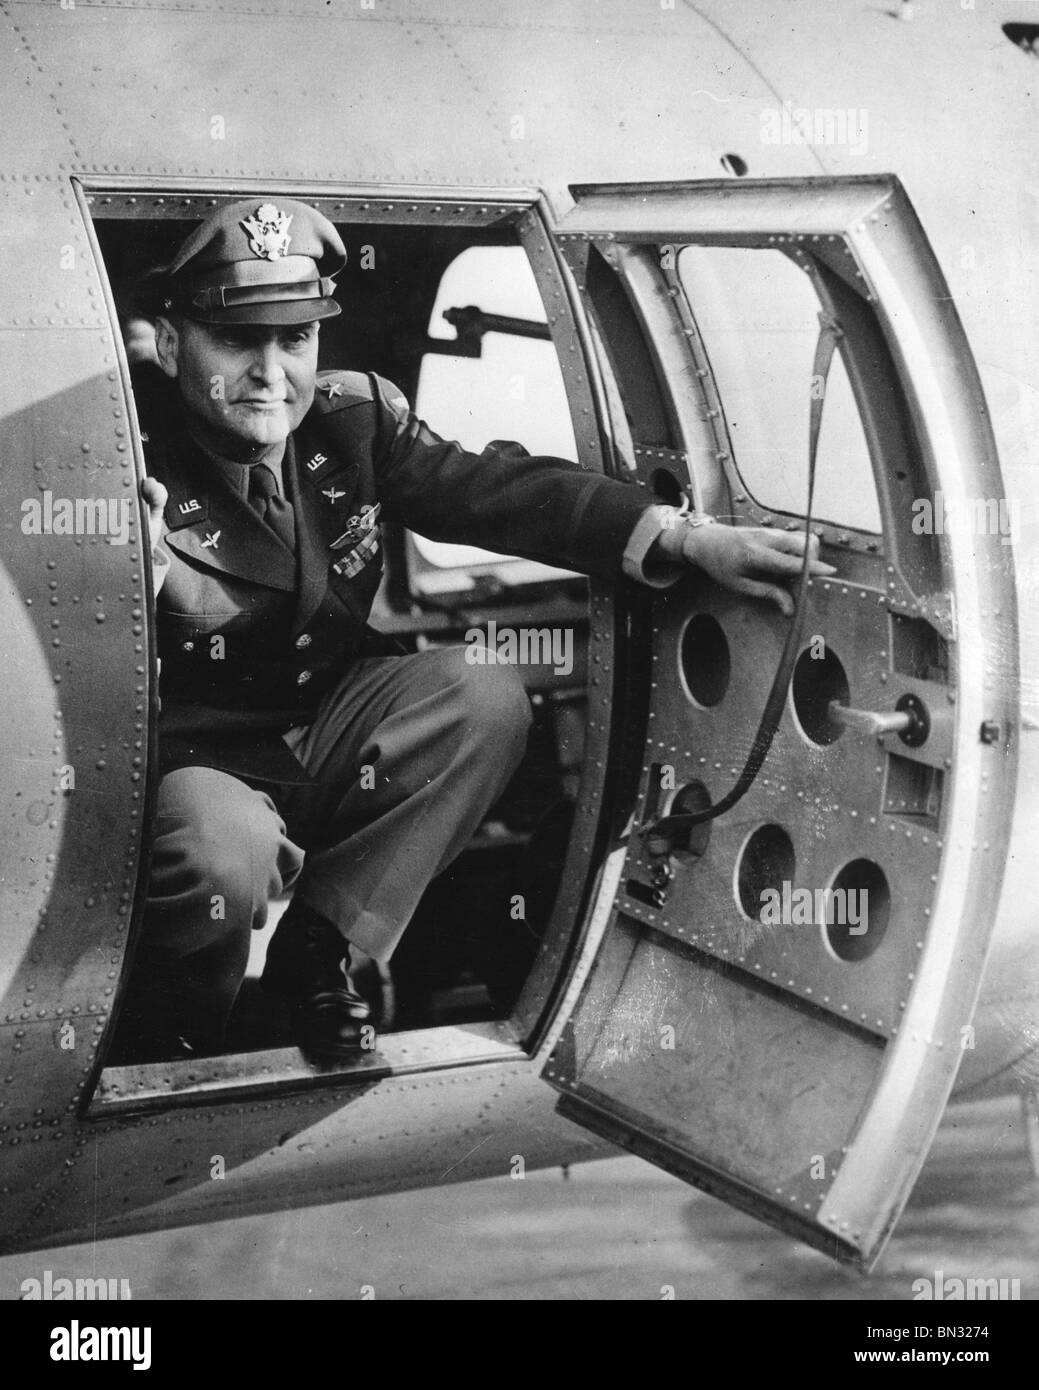 IRA C EAKER (1896-1987) US Army Airforce General about in 1943 - Stock Image